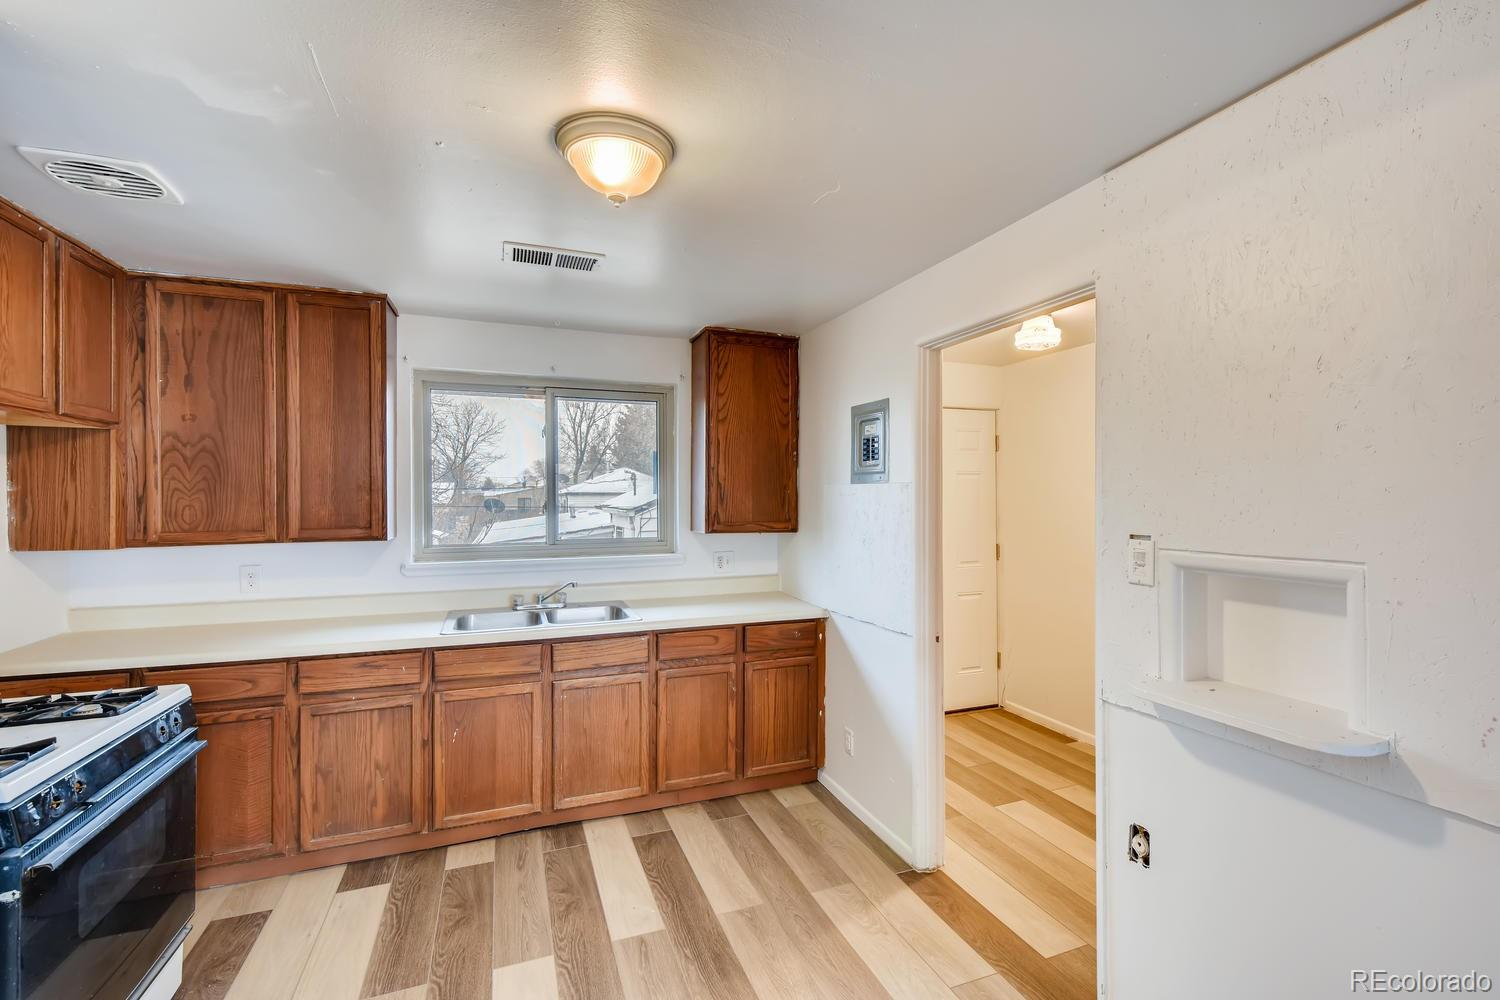 MLS# 6596489 - 4 - 1160 S Quivas Street, Denver, CO 80223